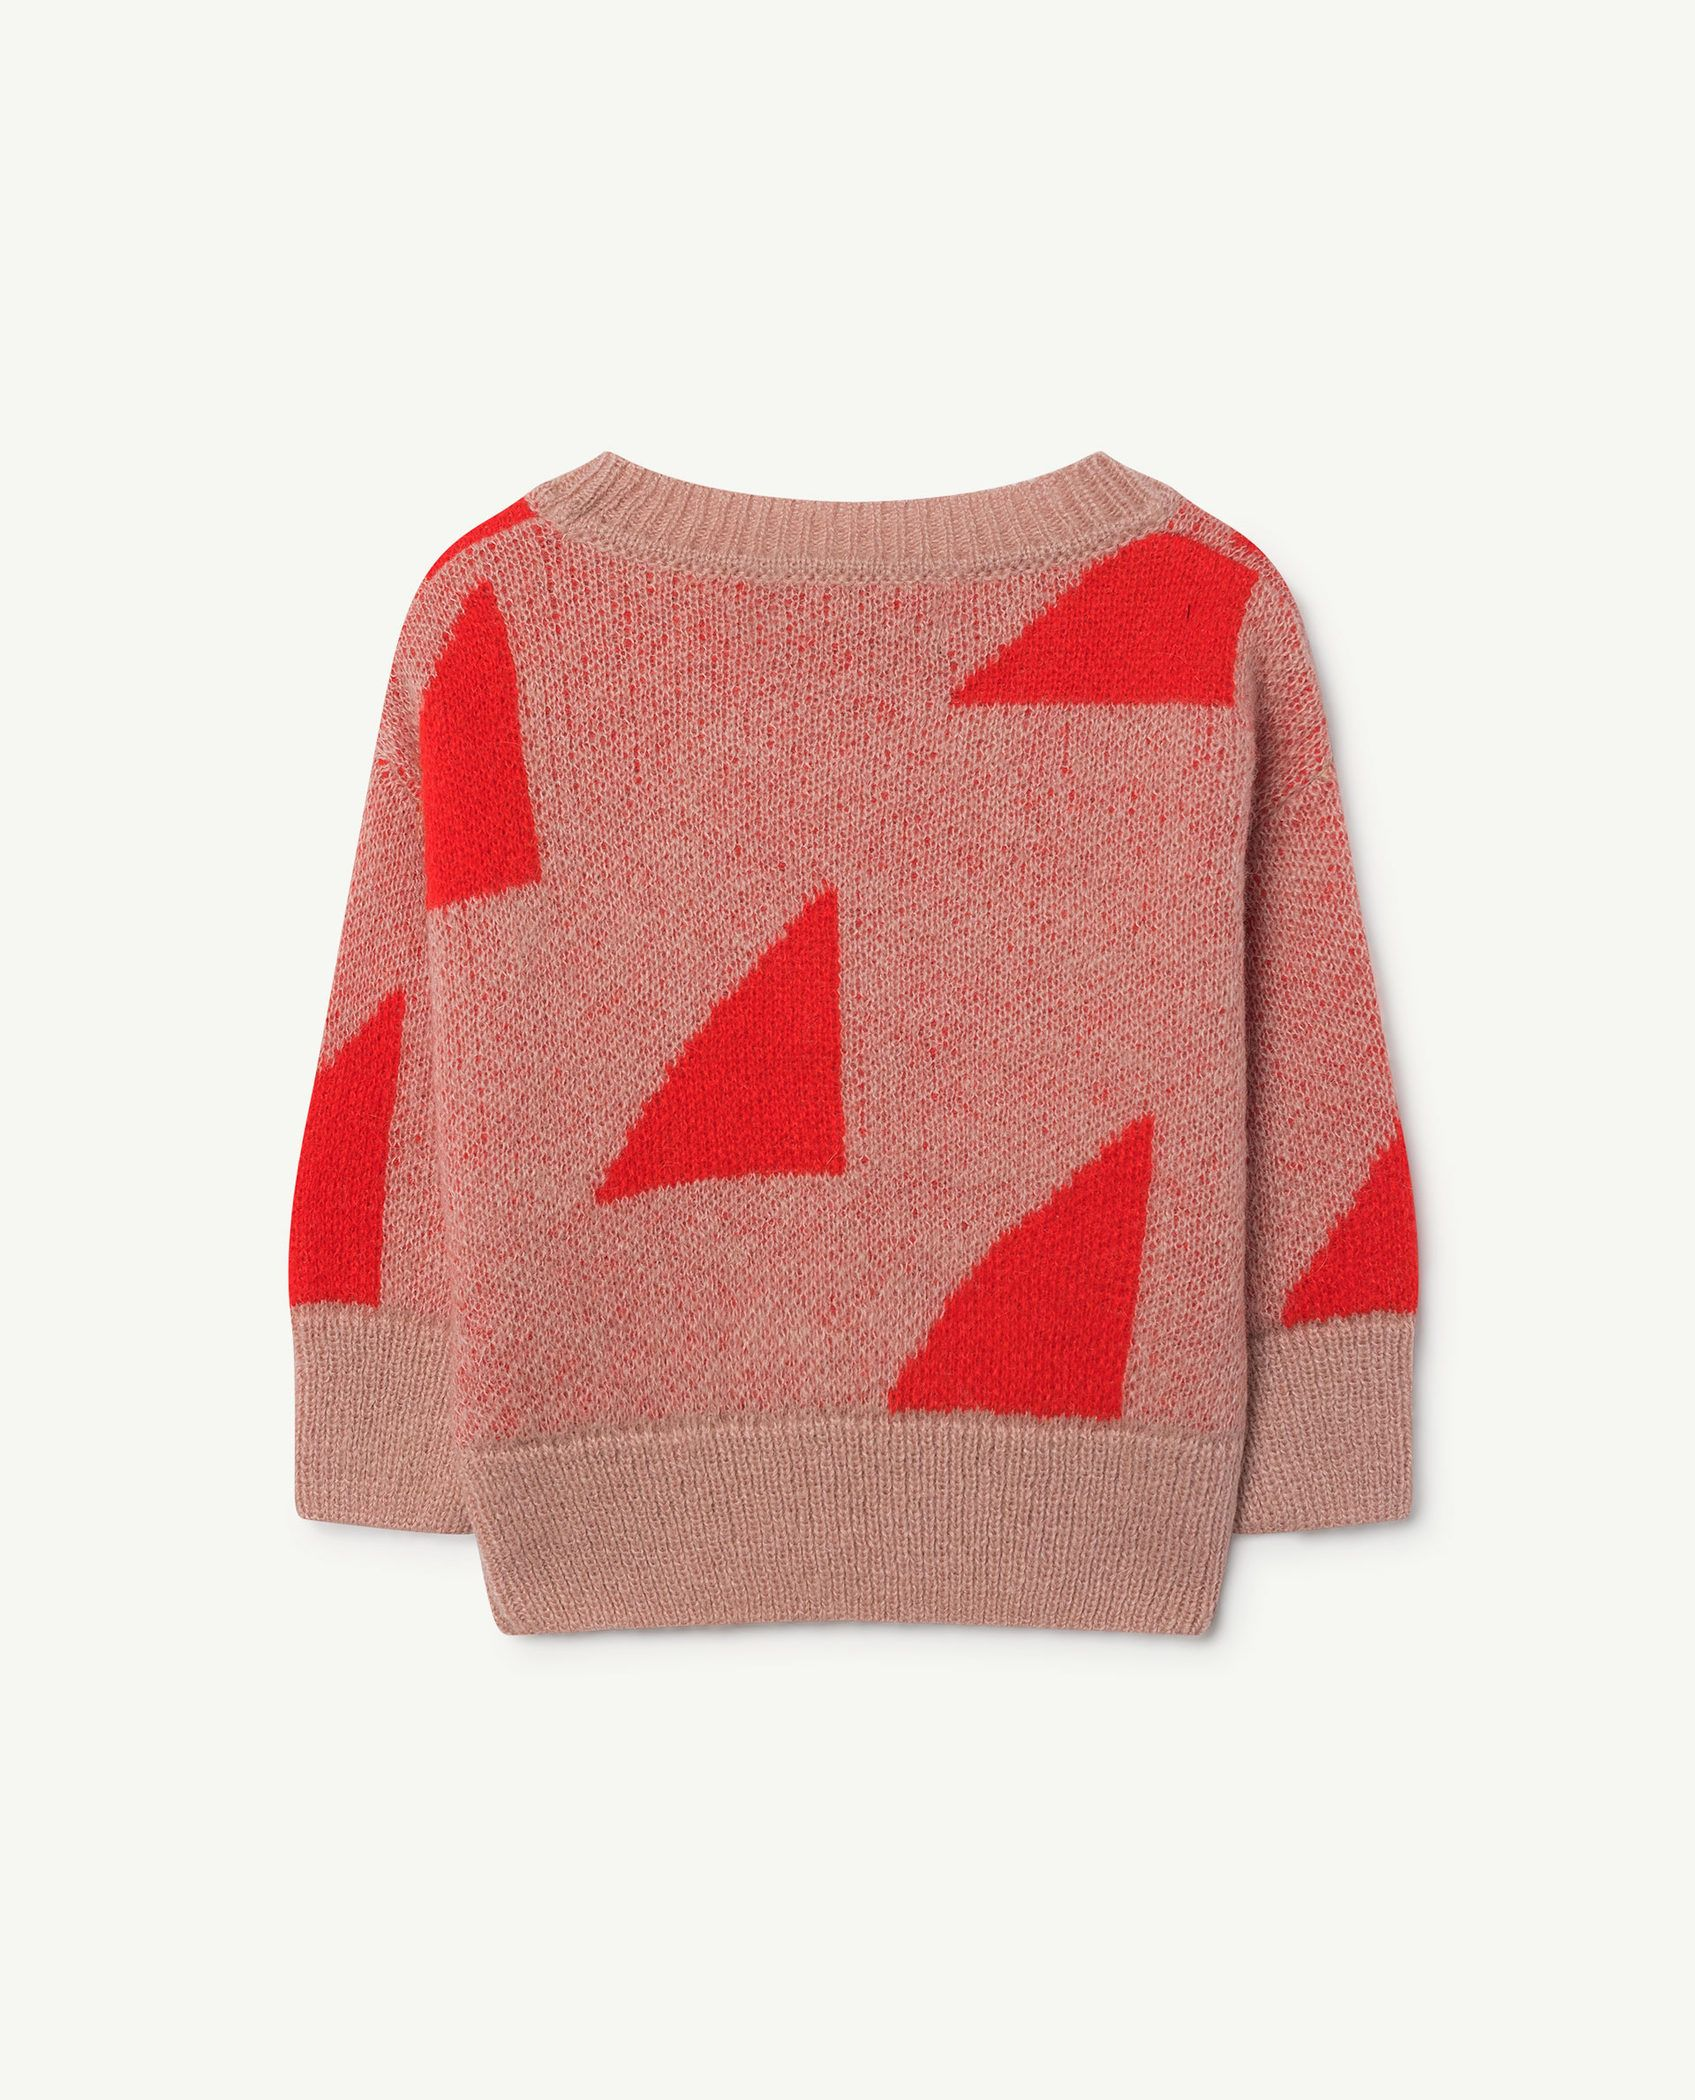 Red Geometric Bull Sweater img-2